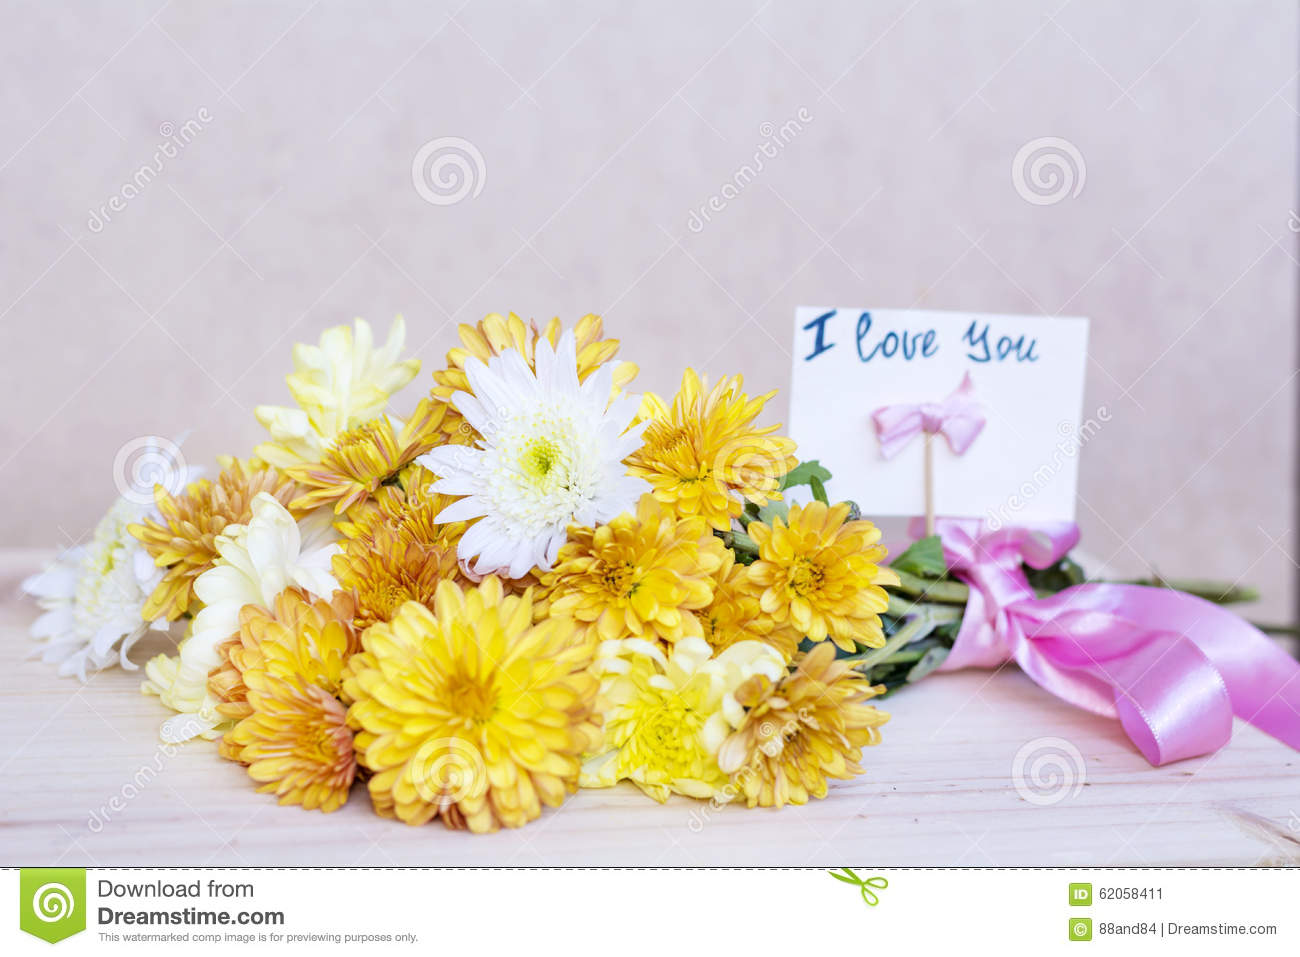 Beautiful Yellow Chrysanthemums Bouquet With I Love You Card Stock